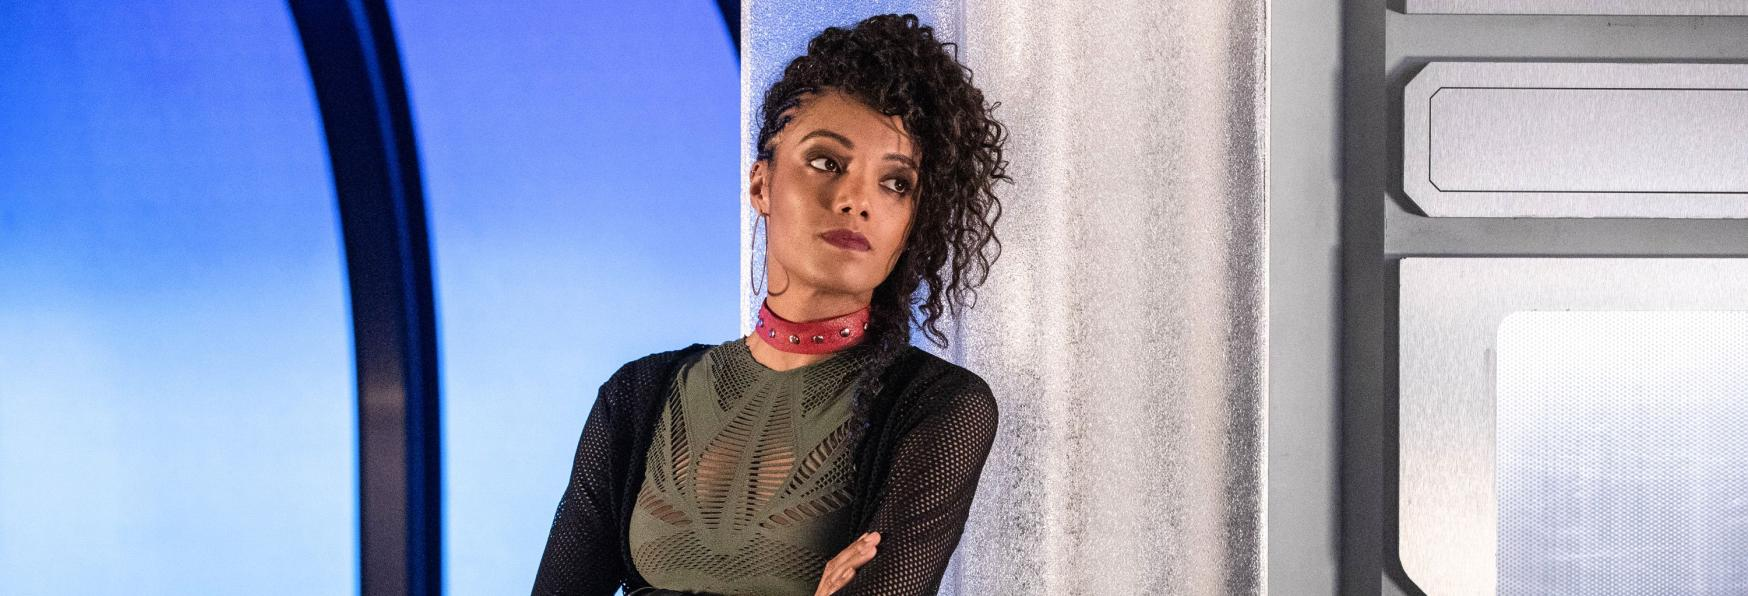 Legends of Tomorrow 6: l'Attrice Maisie Richardson-Sellers dirigerà un Episodio della Stagione